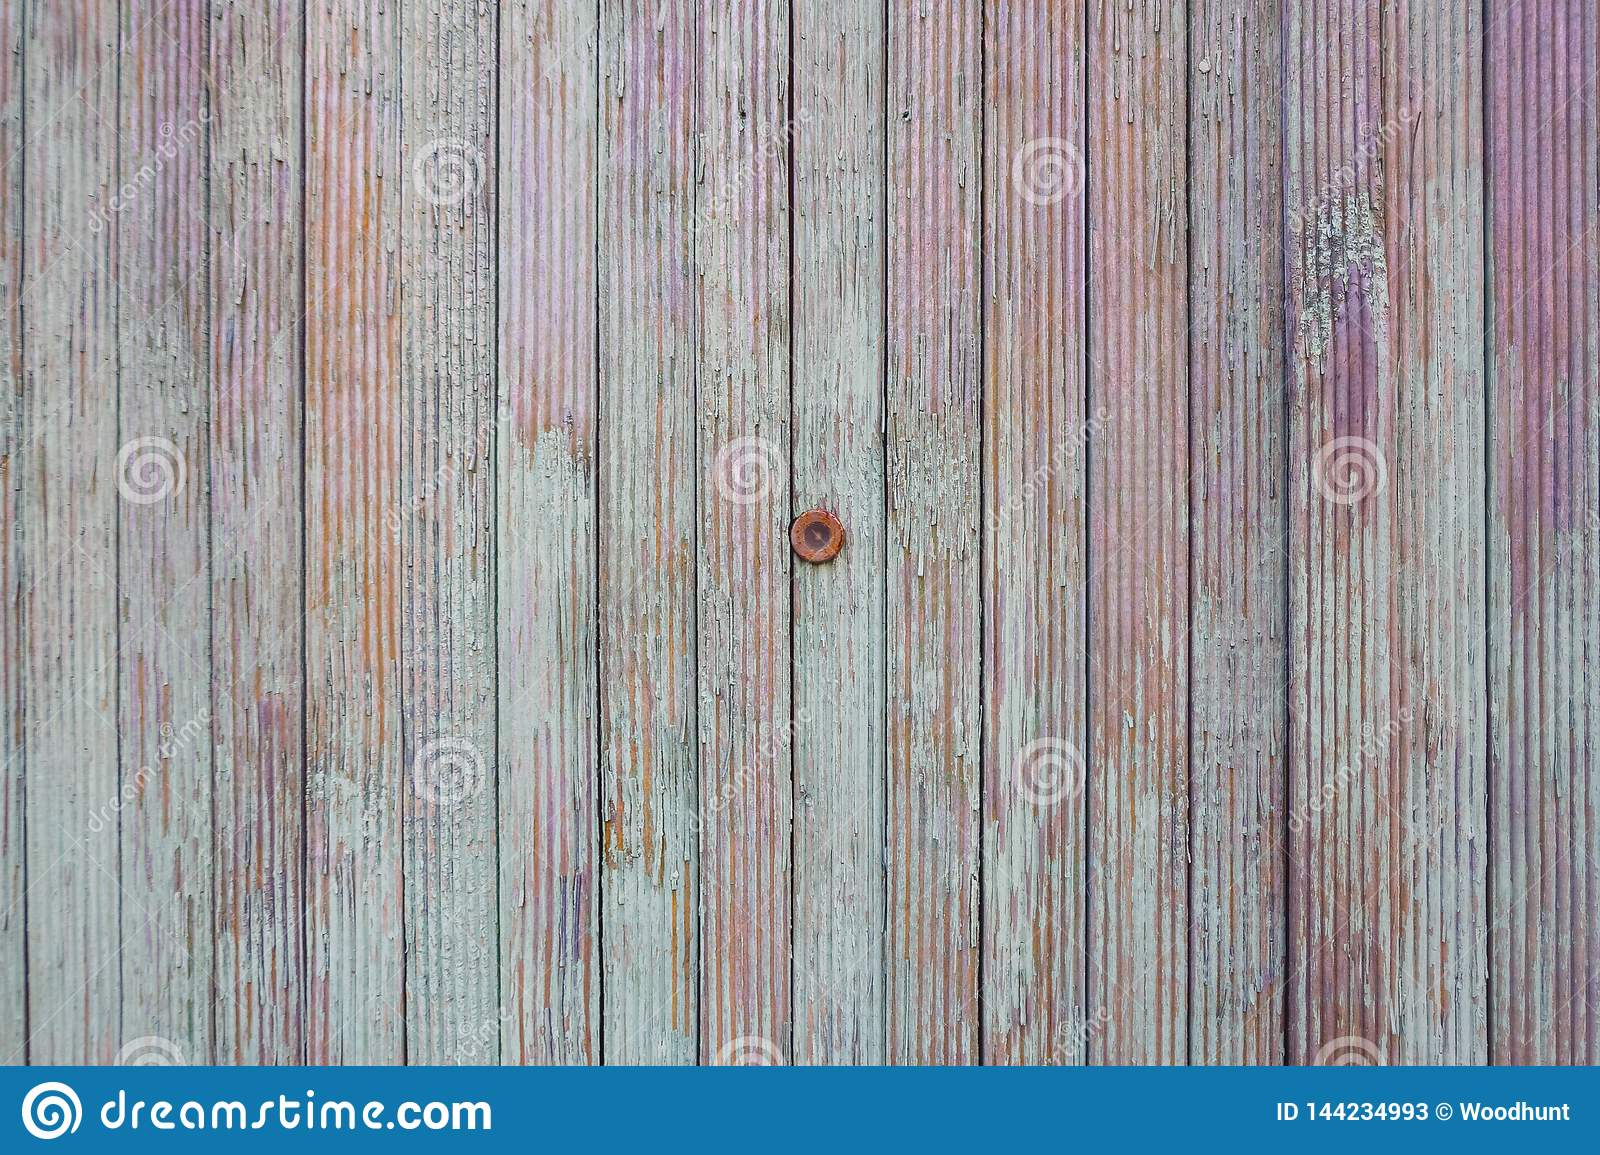 Peephole in the old color fence. The texture of the boards of turquoise, purple and orange